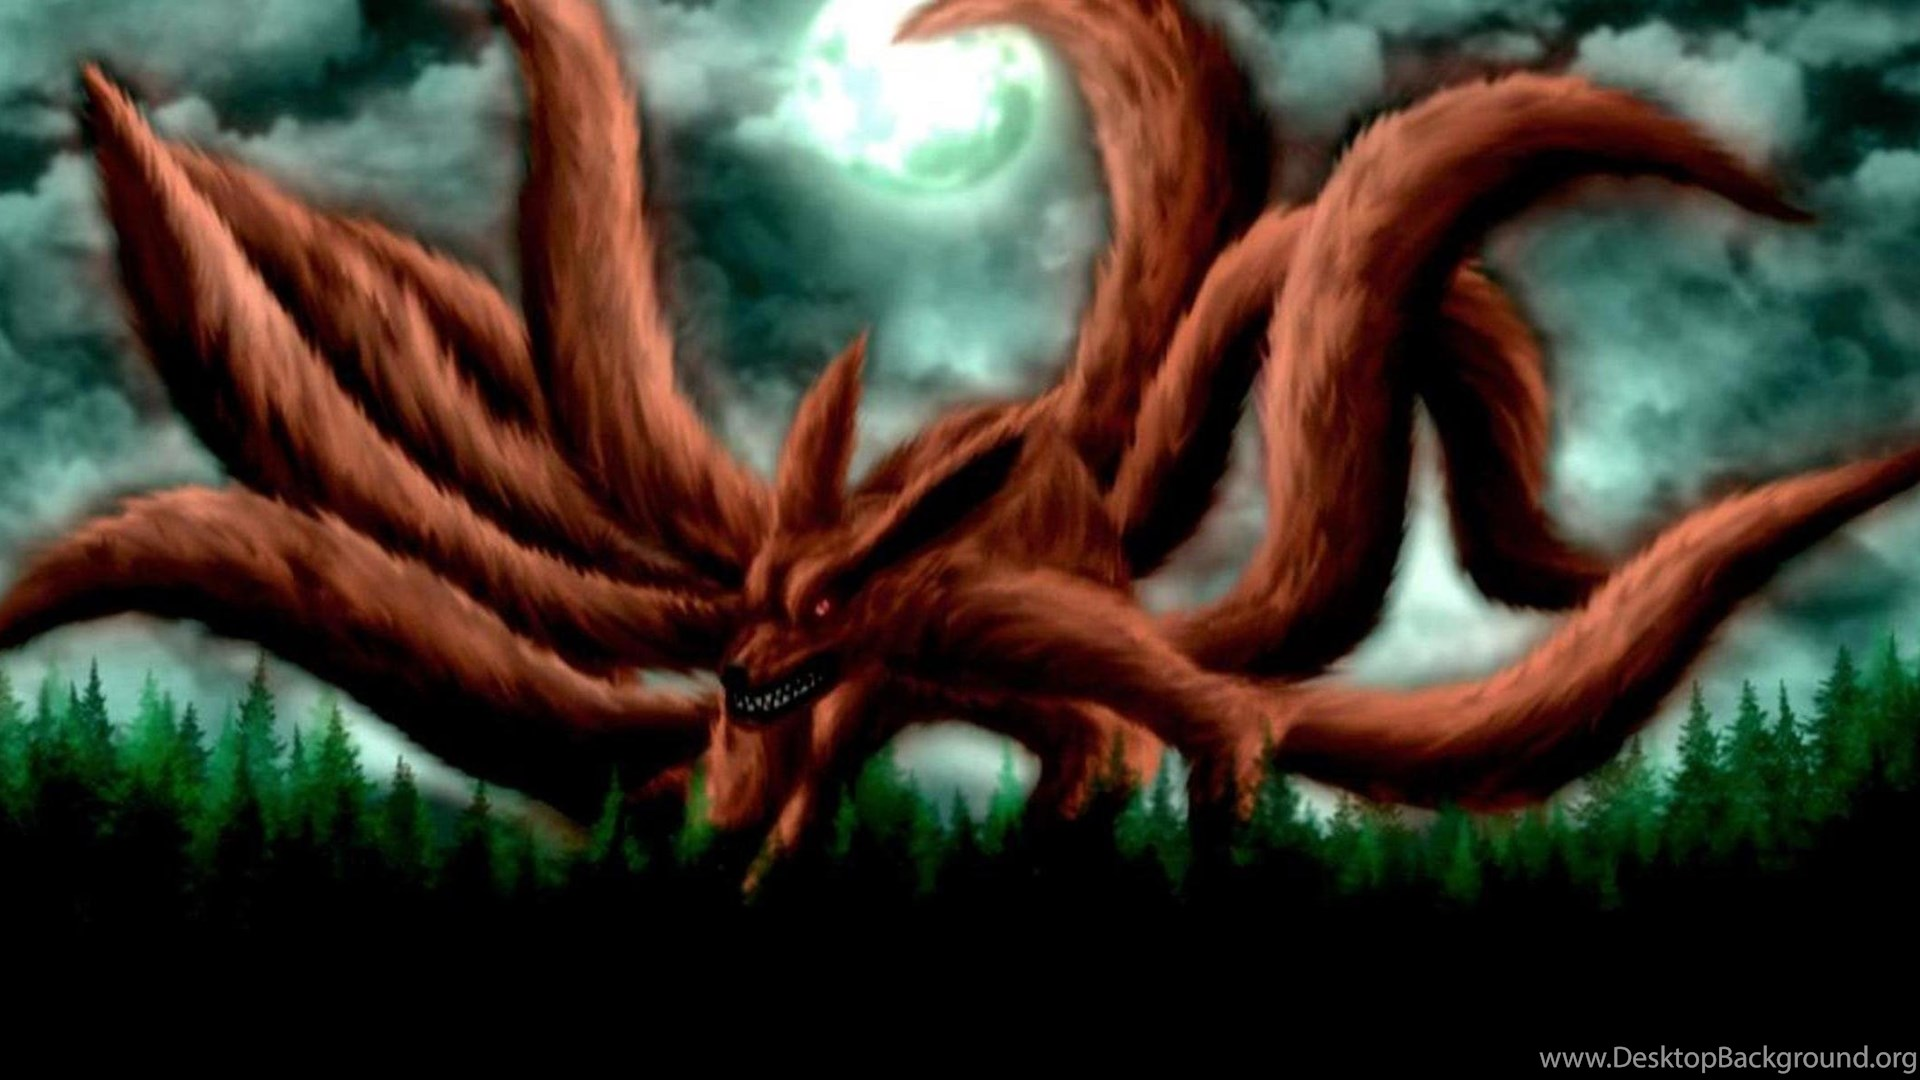 Most Inspiring Wallpaper Naruto Tail - 617295_naruto-nine-tails-wallpapers-wallpapers-cave_2400x1200_h  2018.jpg